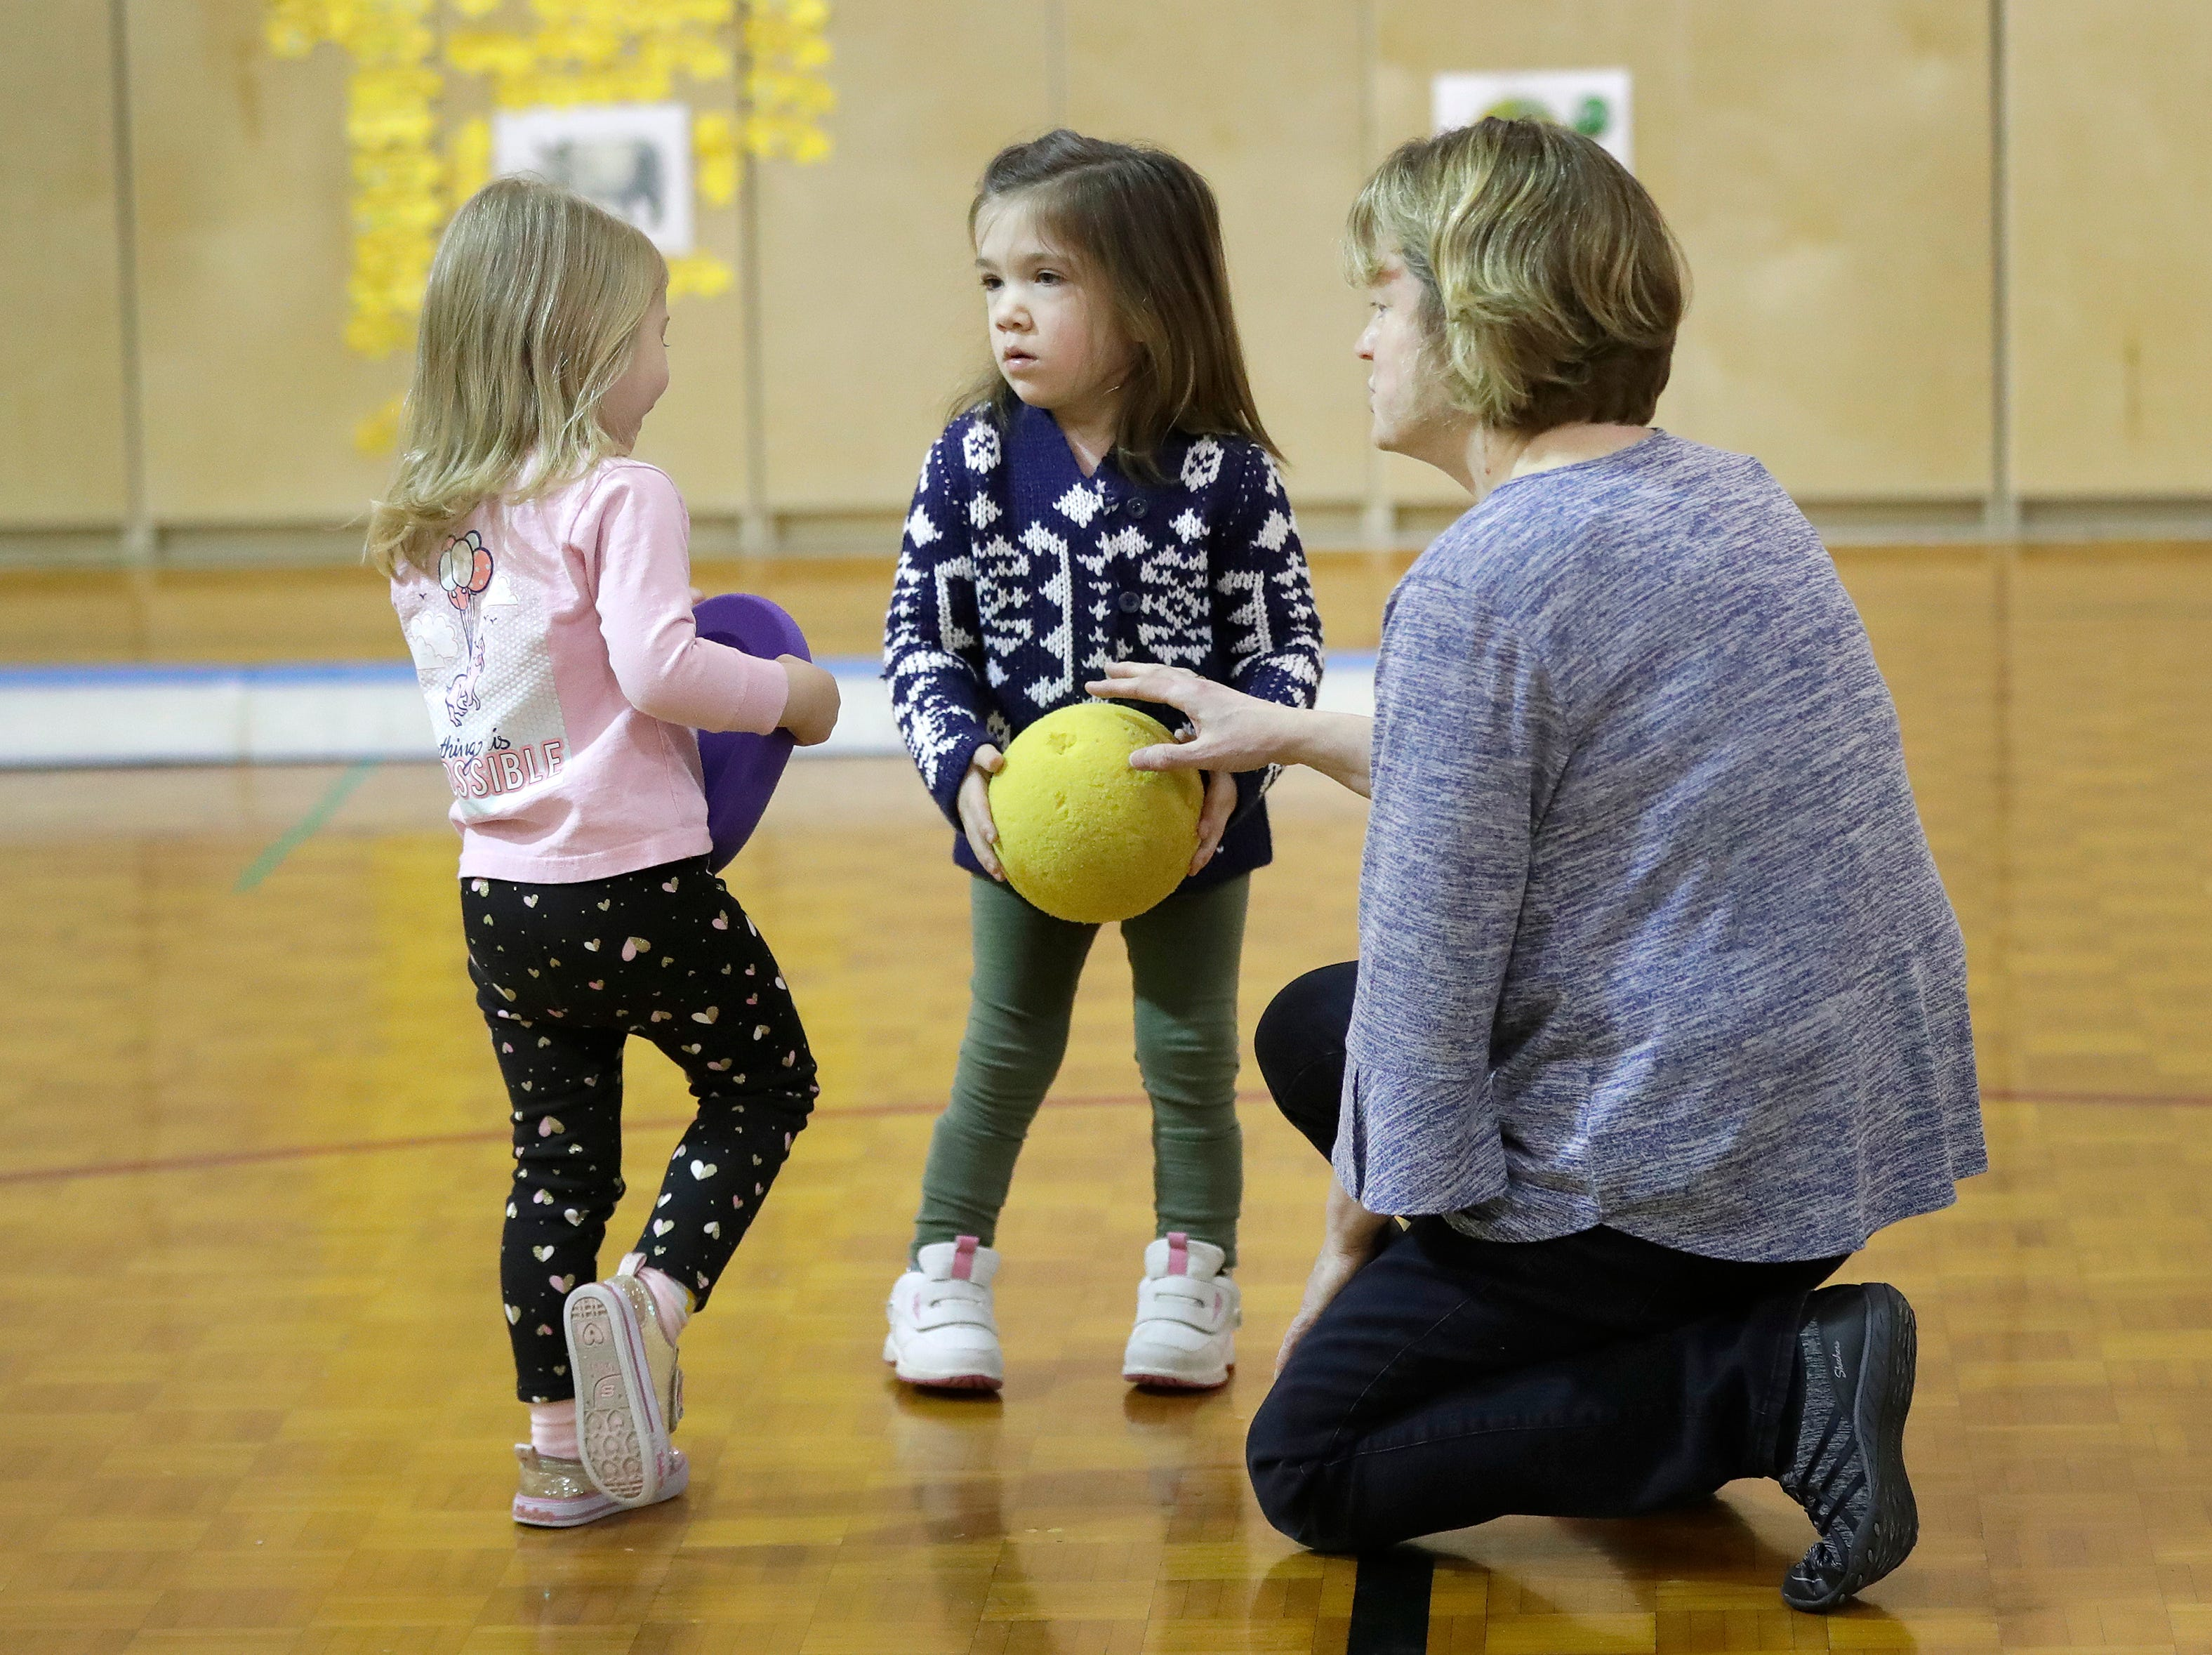 Lydia Denton, 3, left, shares toys with Avi Brennan, 4, as there teacher Renee Poeschl encourages them during a gym class Monday, January 7, 2019, at the Washington School of Early Learning in Neenah, Wis. It was Avi's first day of school.Dan Powers/USA TODAY NETWORK-Wisconsin